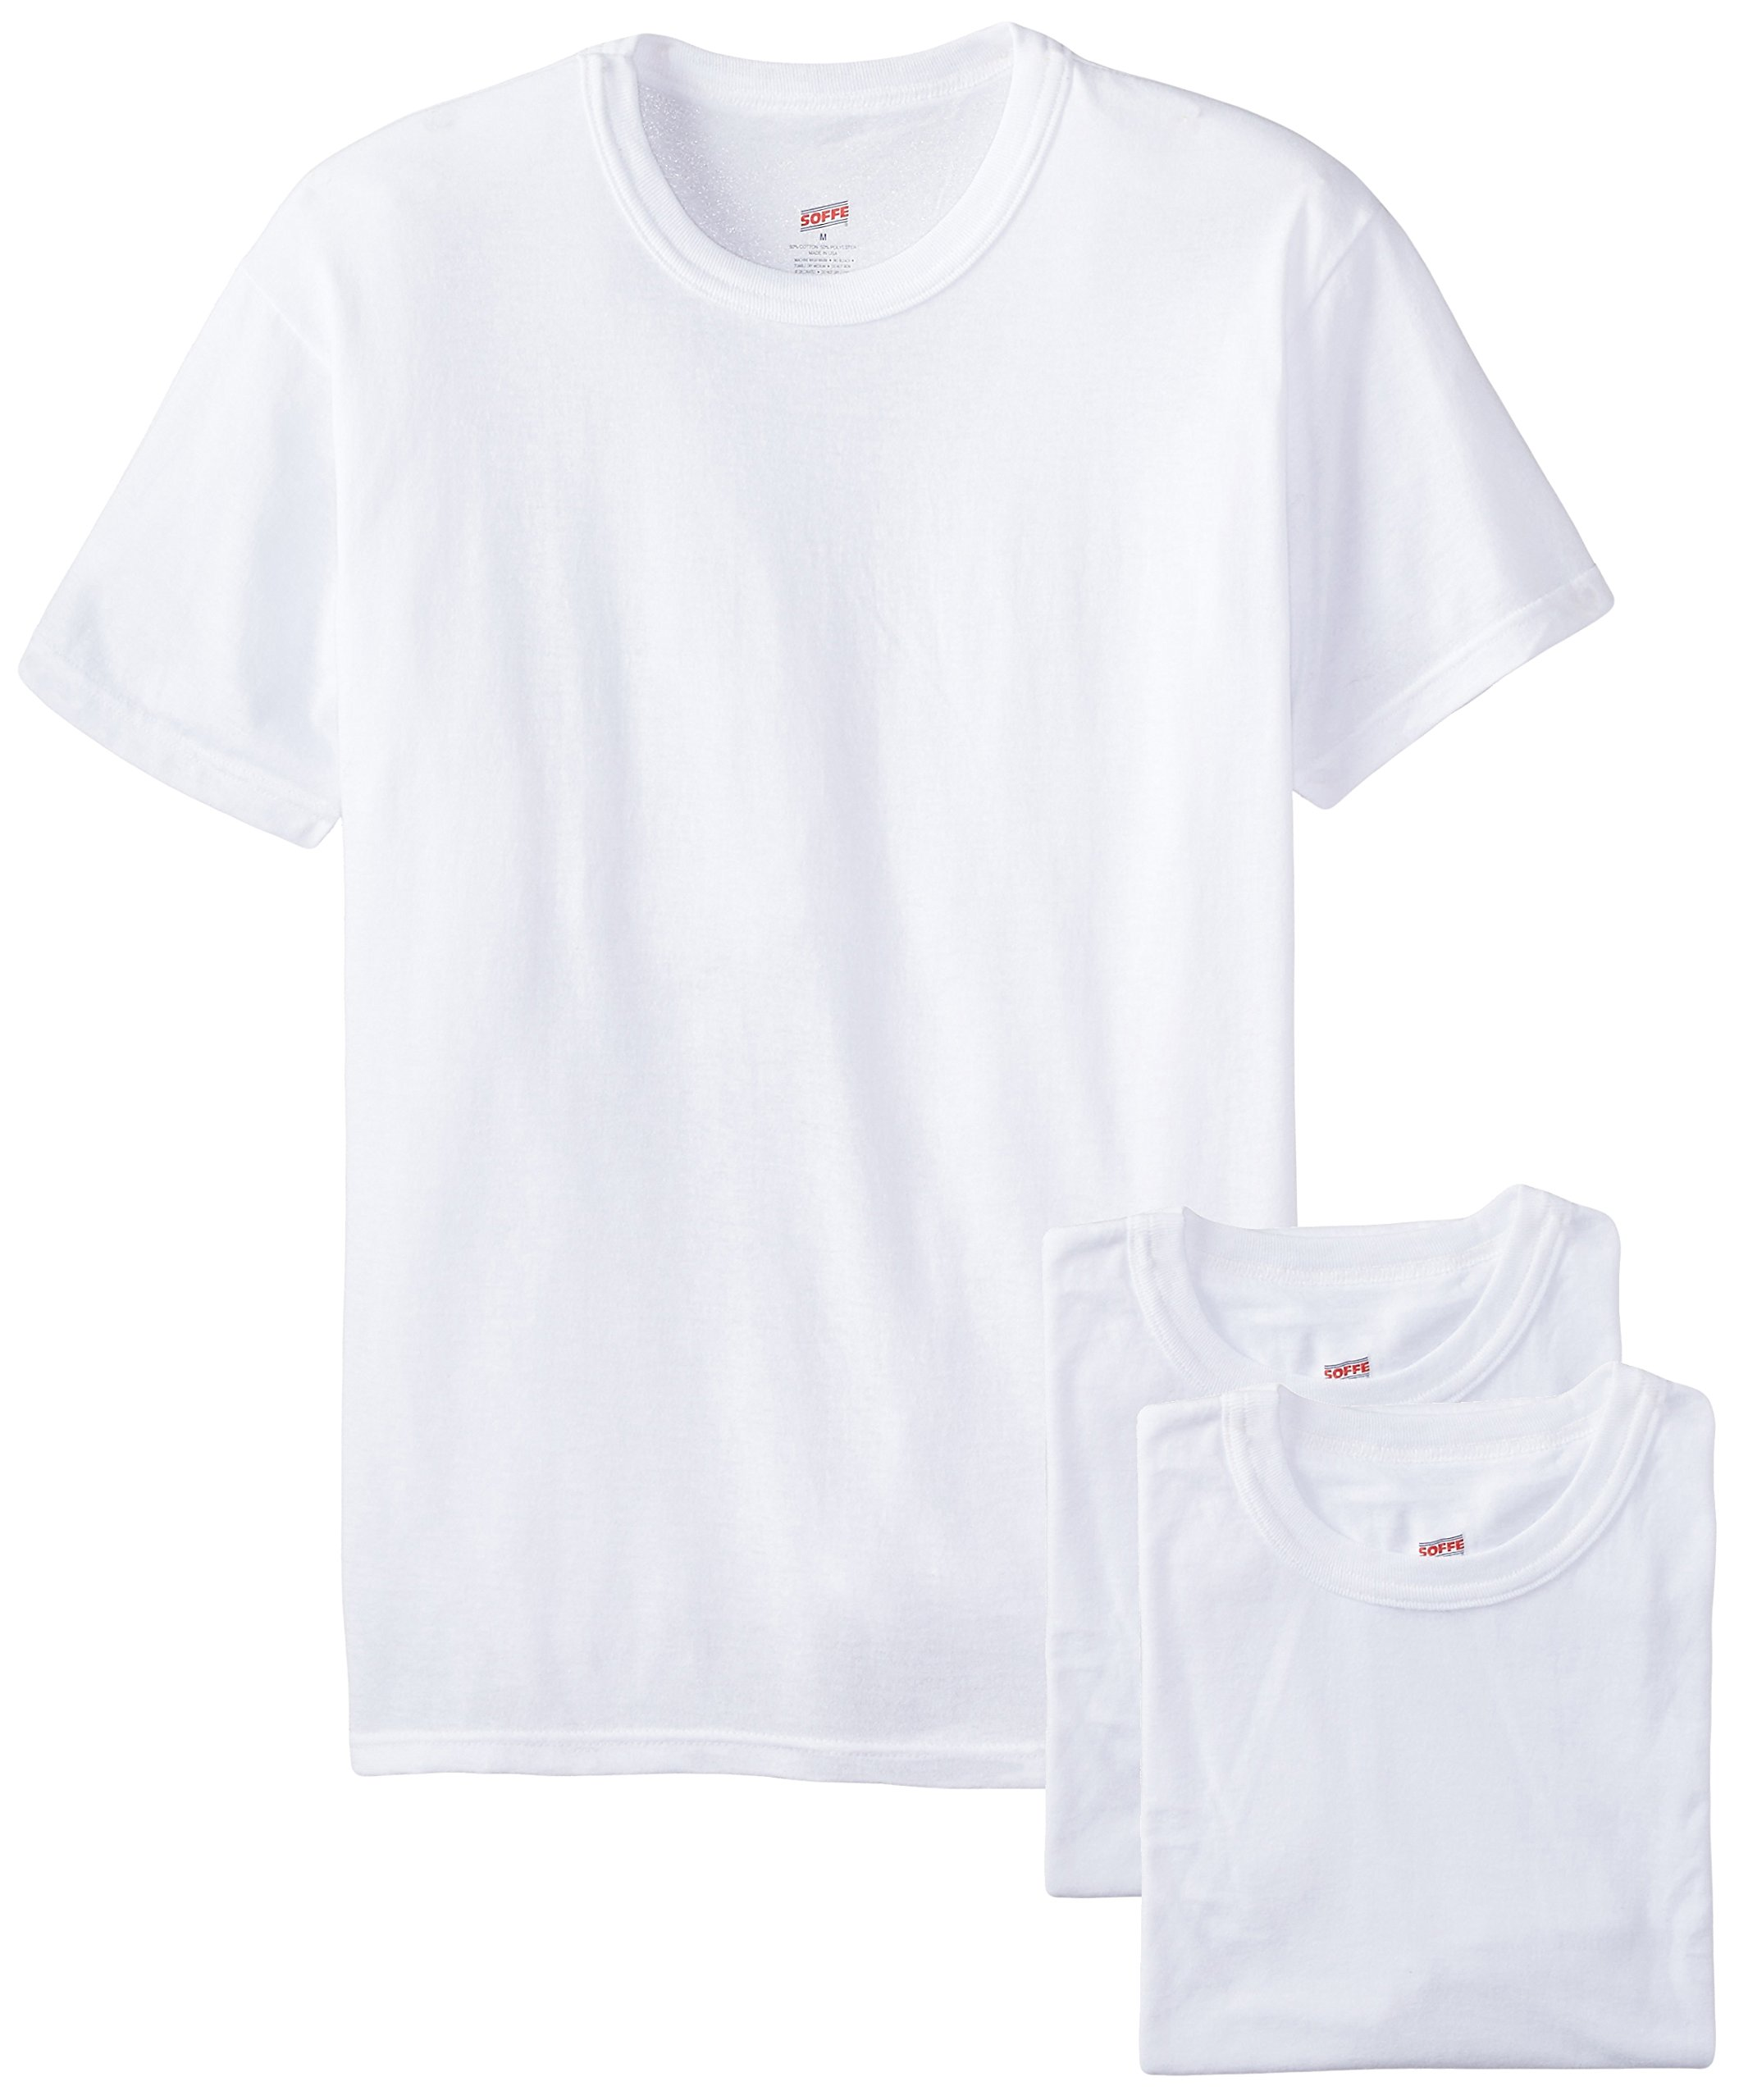 Soffe Men's 3-Pack Short Sleeve Crew Neck Military T-Shirt, White, Small